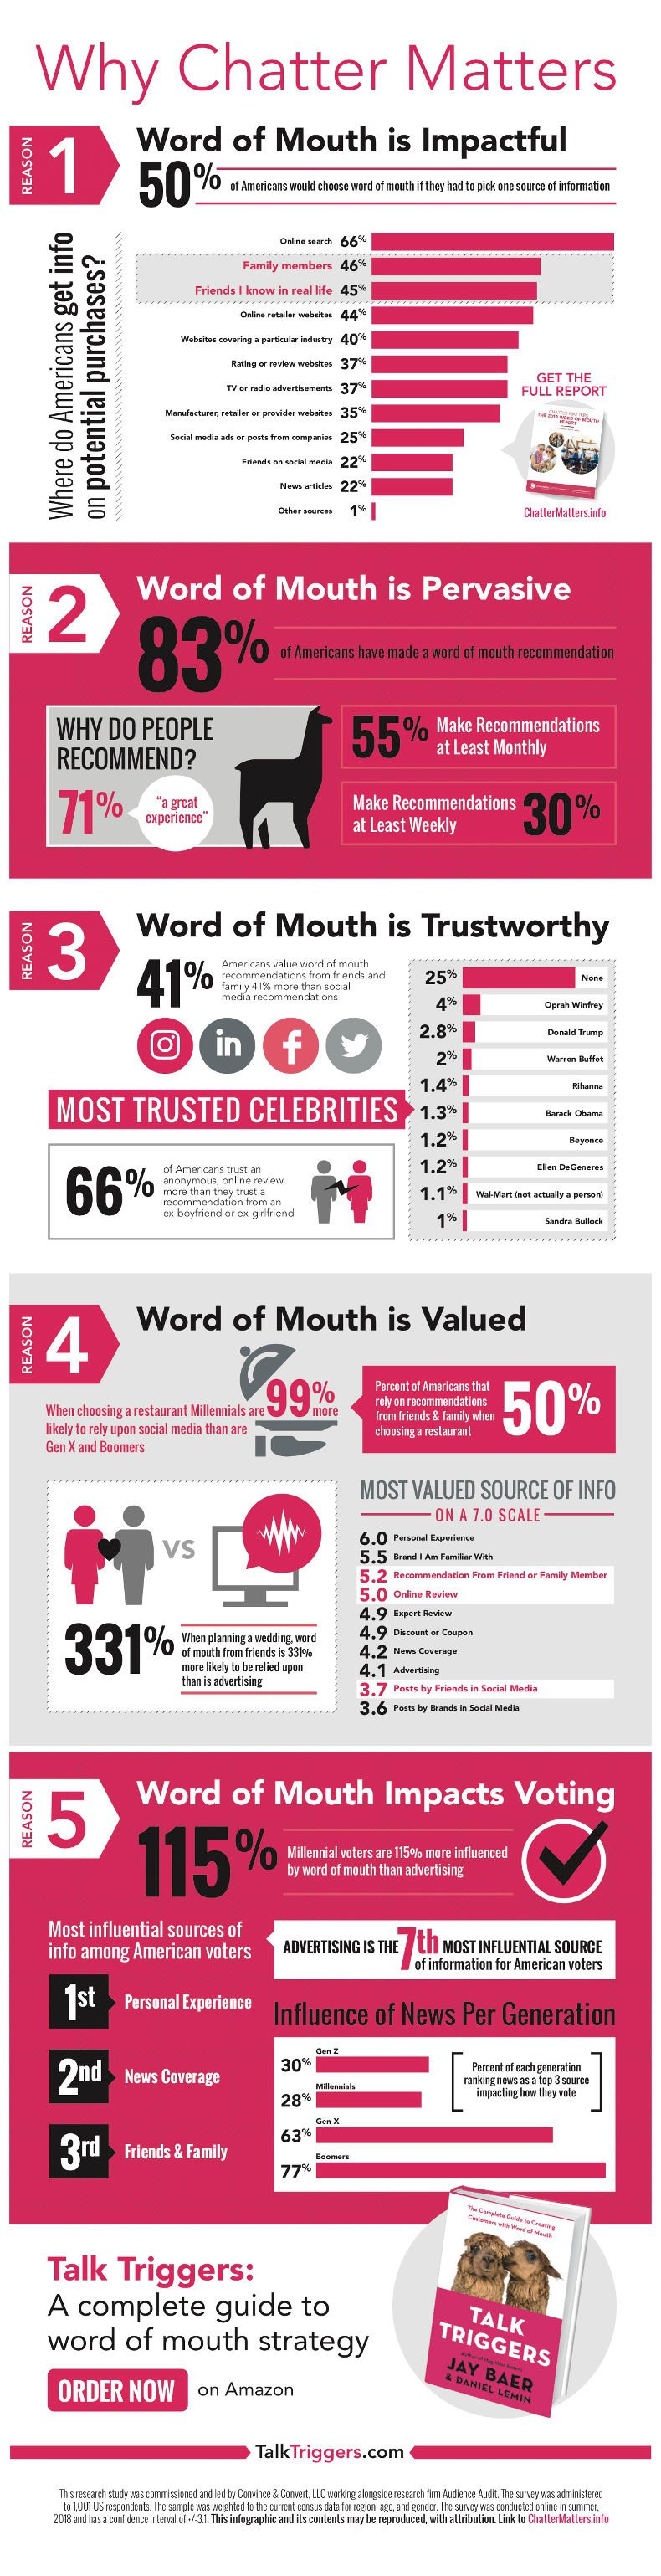 181015-infographic-word-of-mouth-small